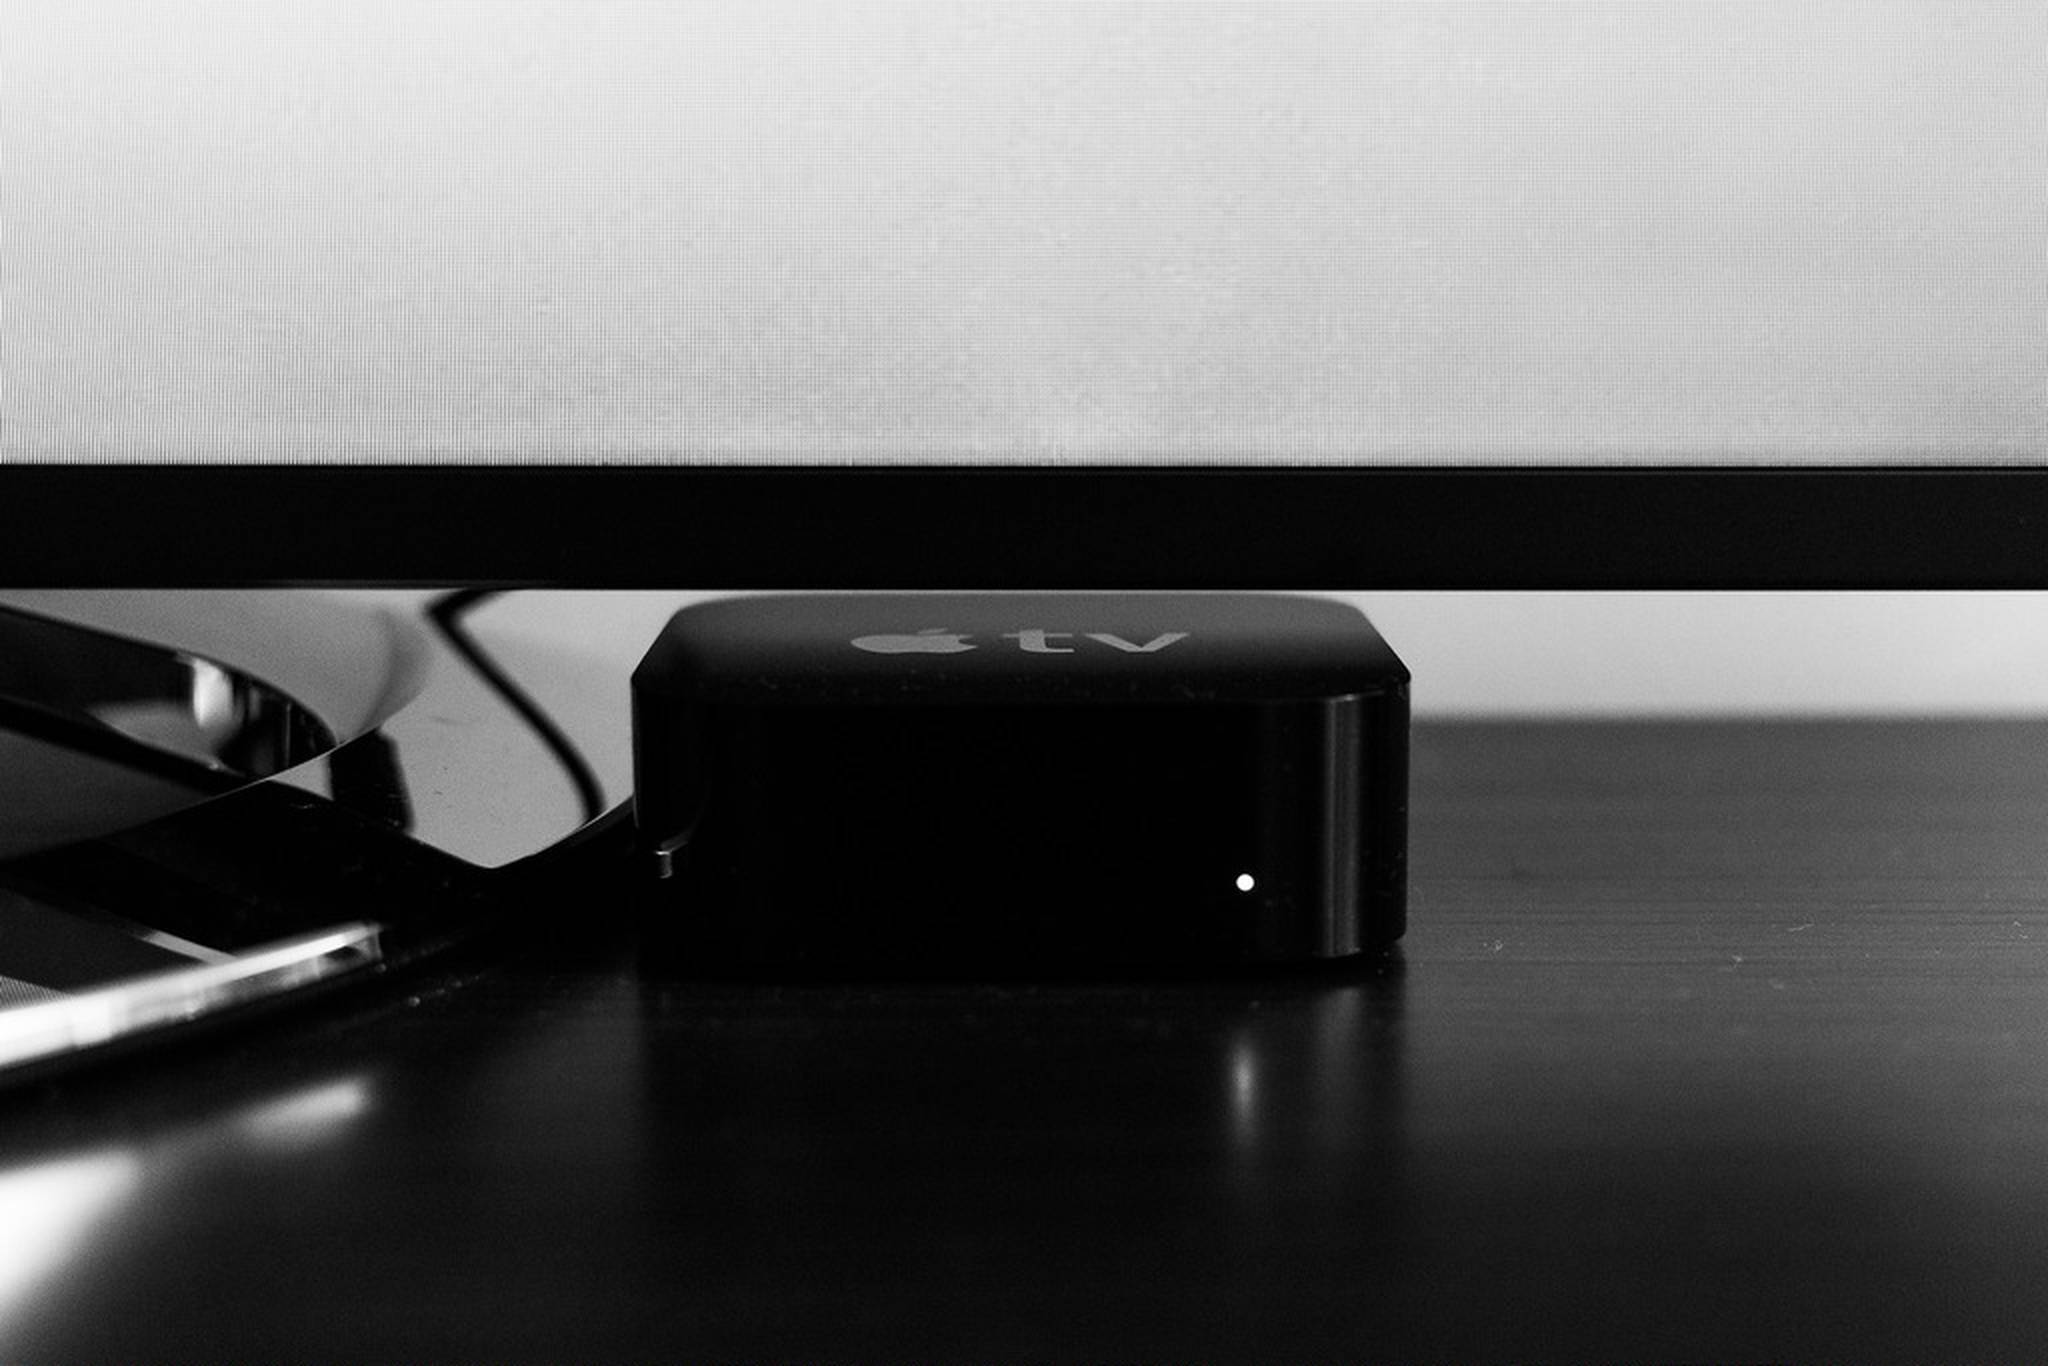 Black and white image of an Apple TV under a TV set